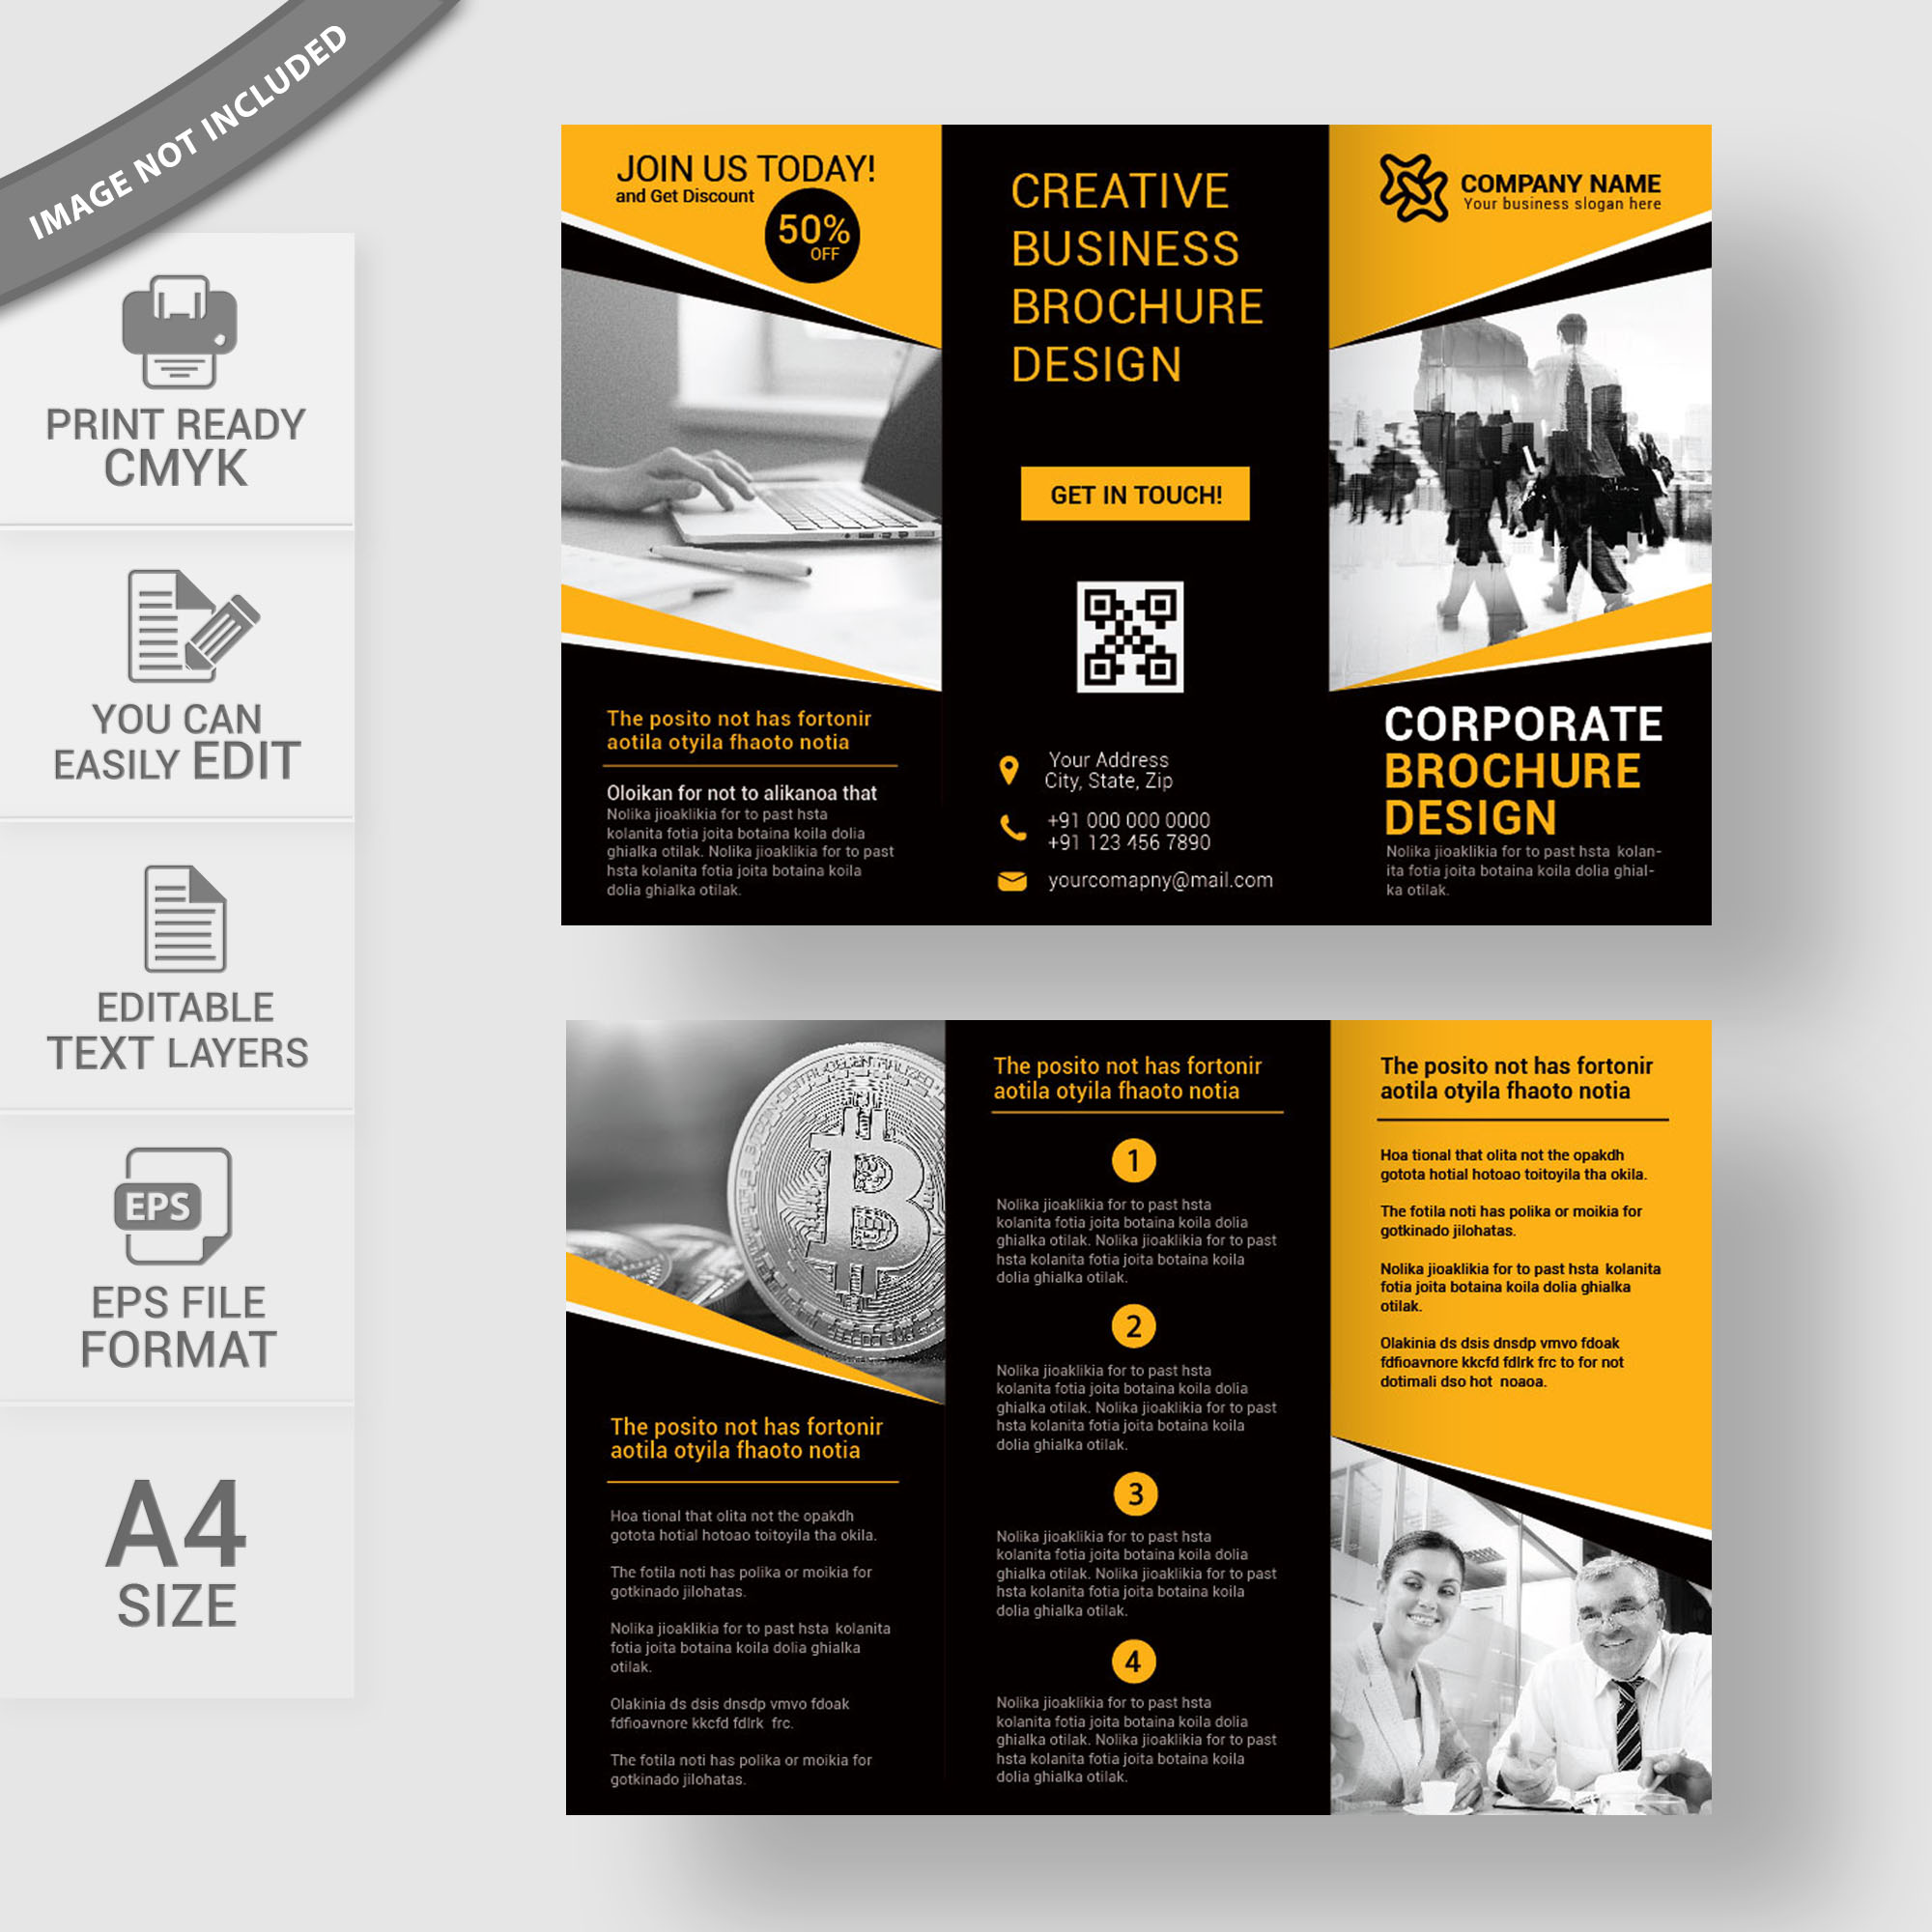 Business Trifold Brochure Template Free Download Wisxicom - Business brochures templates free